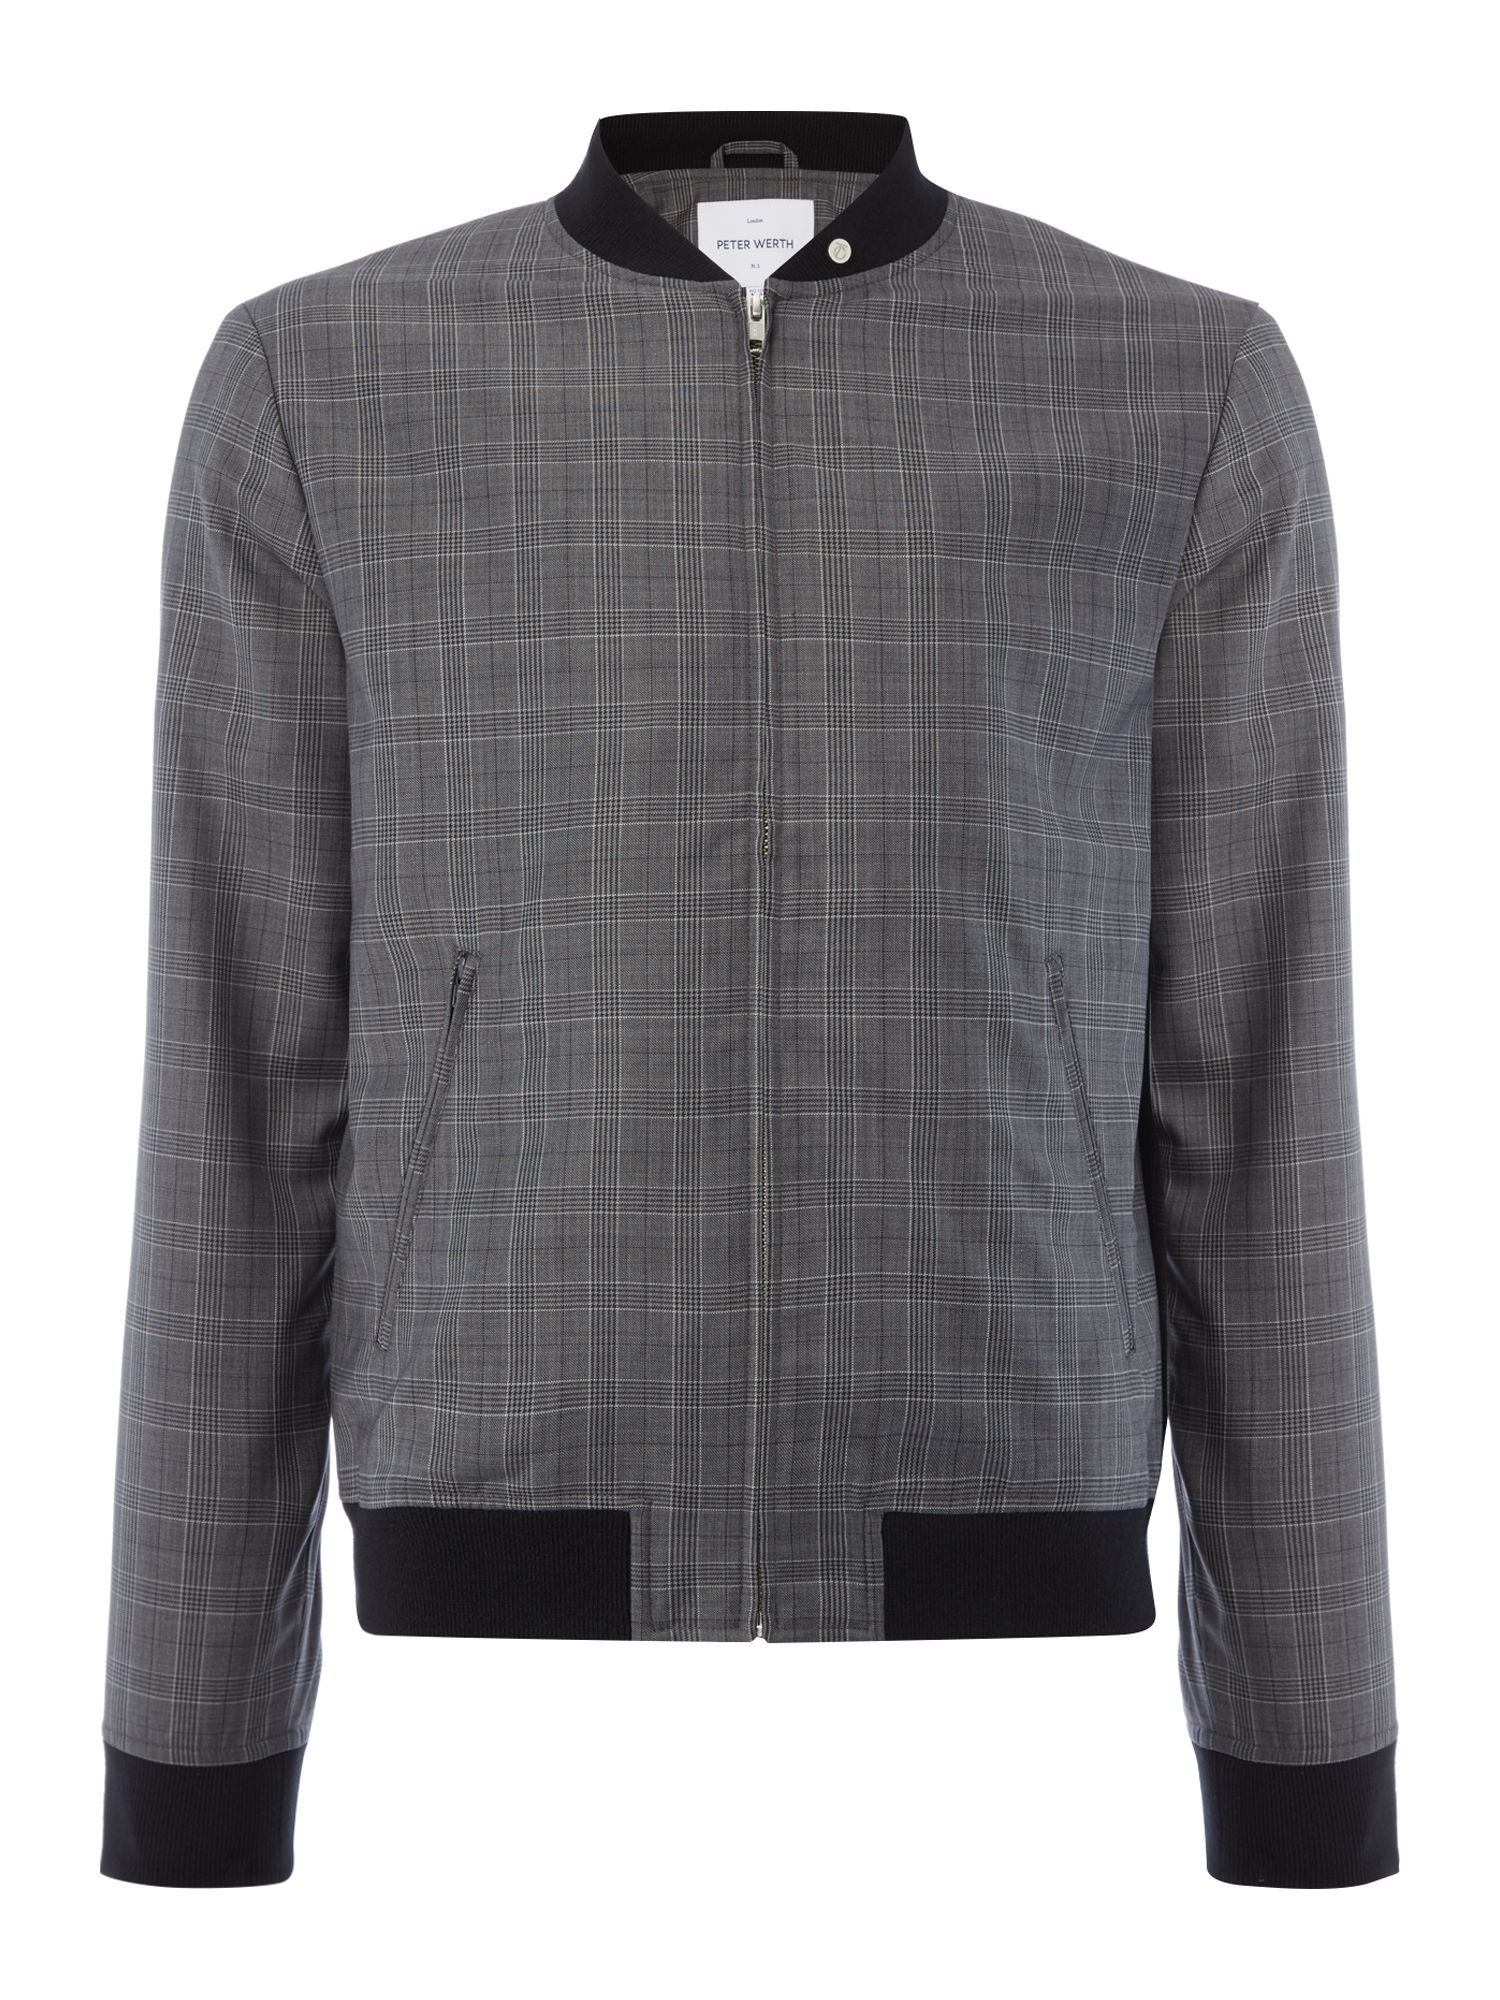 Men's Vintage Style Coats and Jackets Mens Peter Werth Rogers Wool Mix Check Bomber Jacket Grey £64.00 AT vintagedancer.com